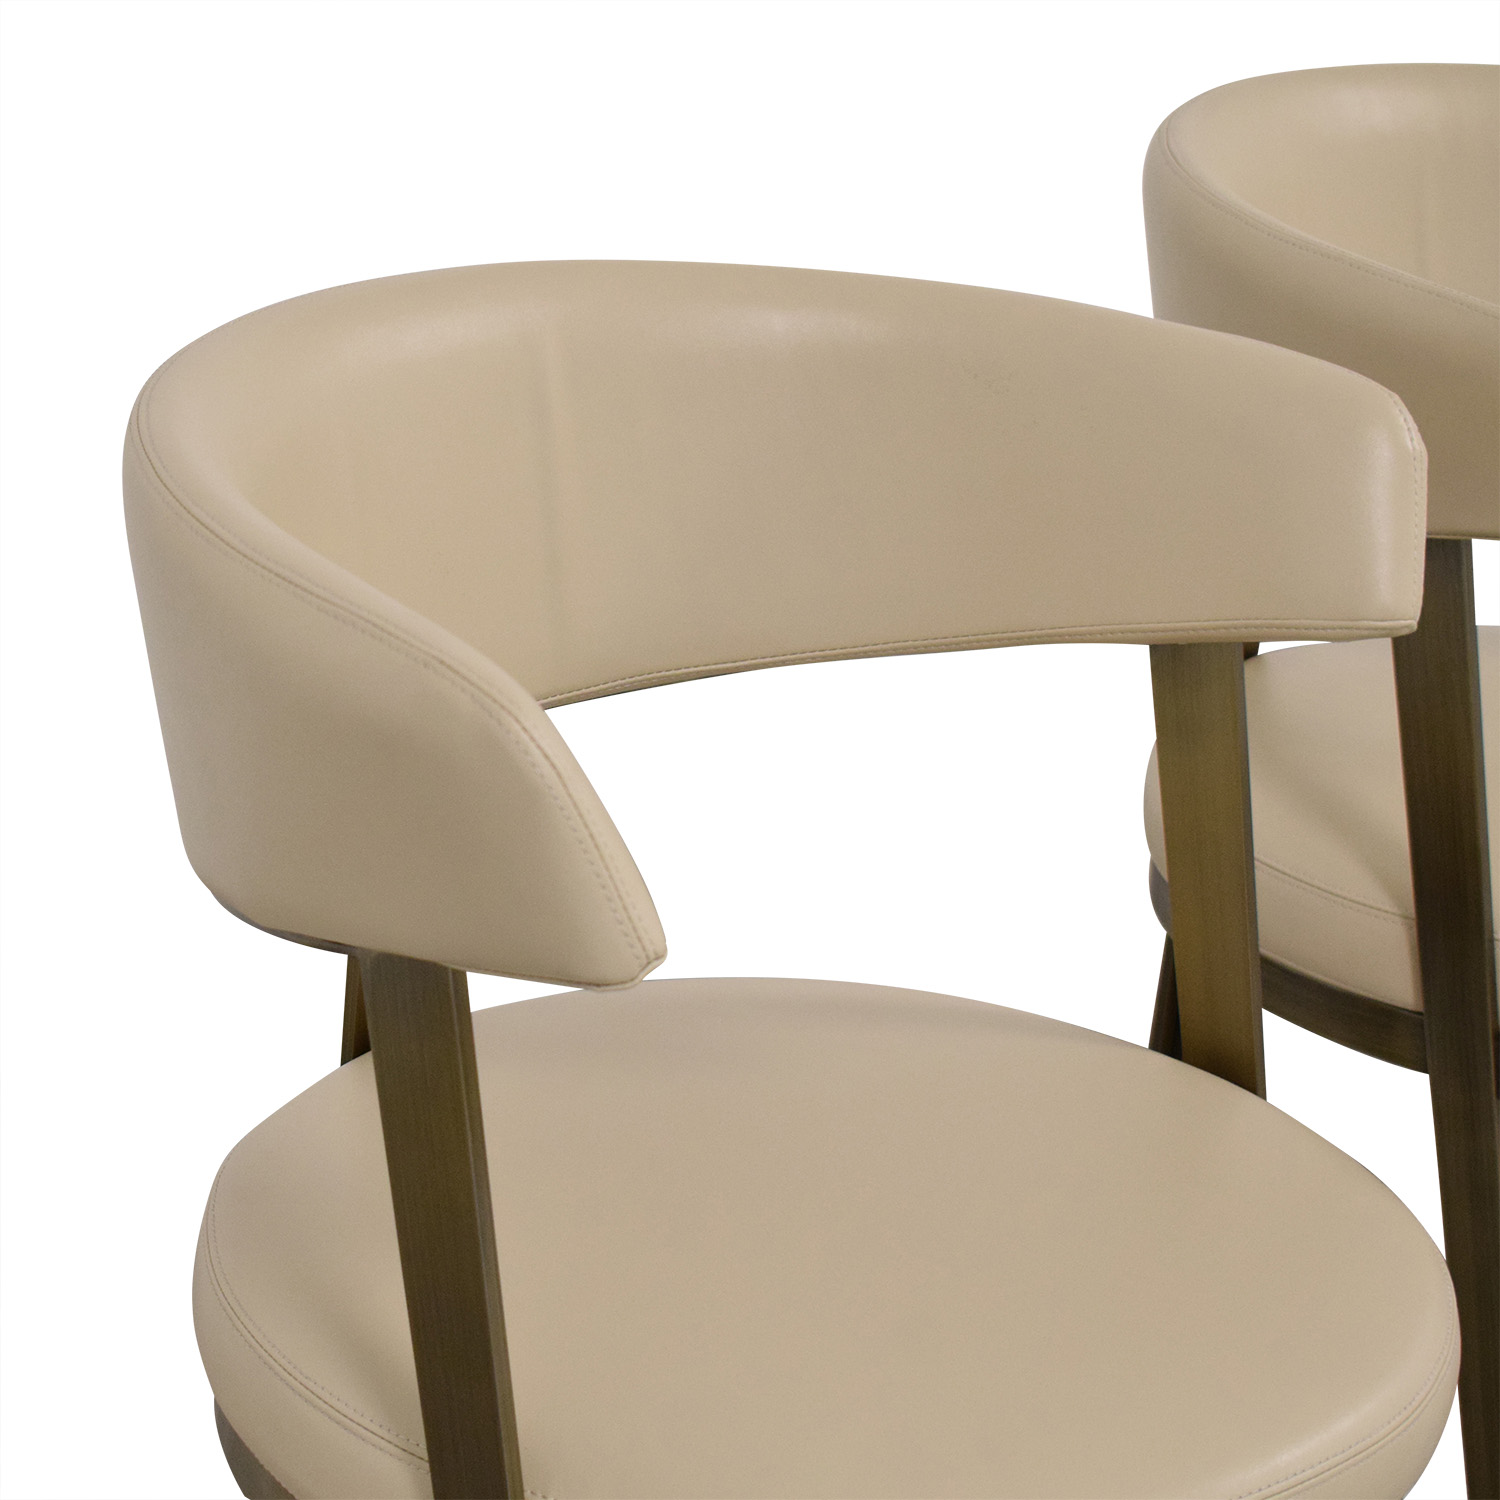 Interlude Home Dining Chairs / Dining Chairs